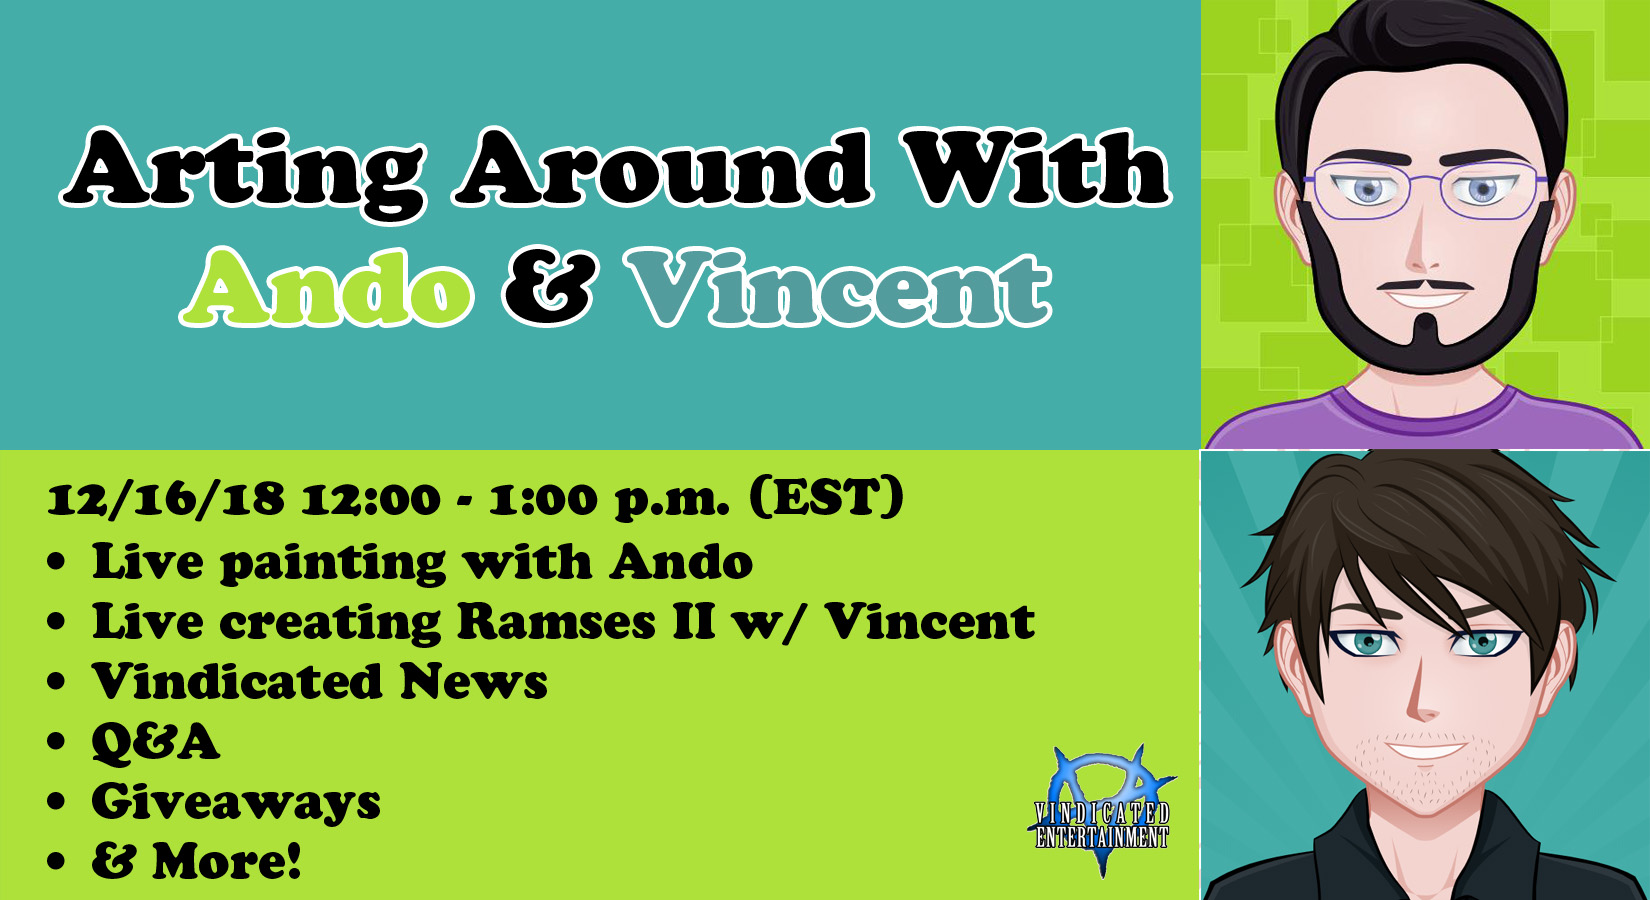 Arting Around With Ando and Vincent Promo.jpg